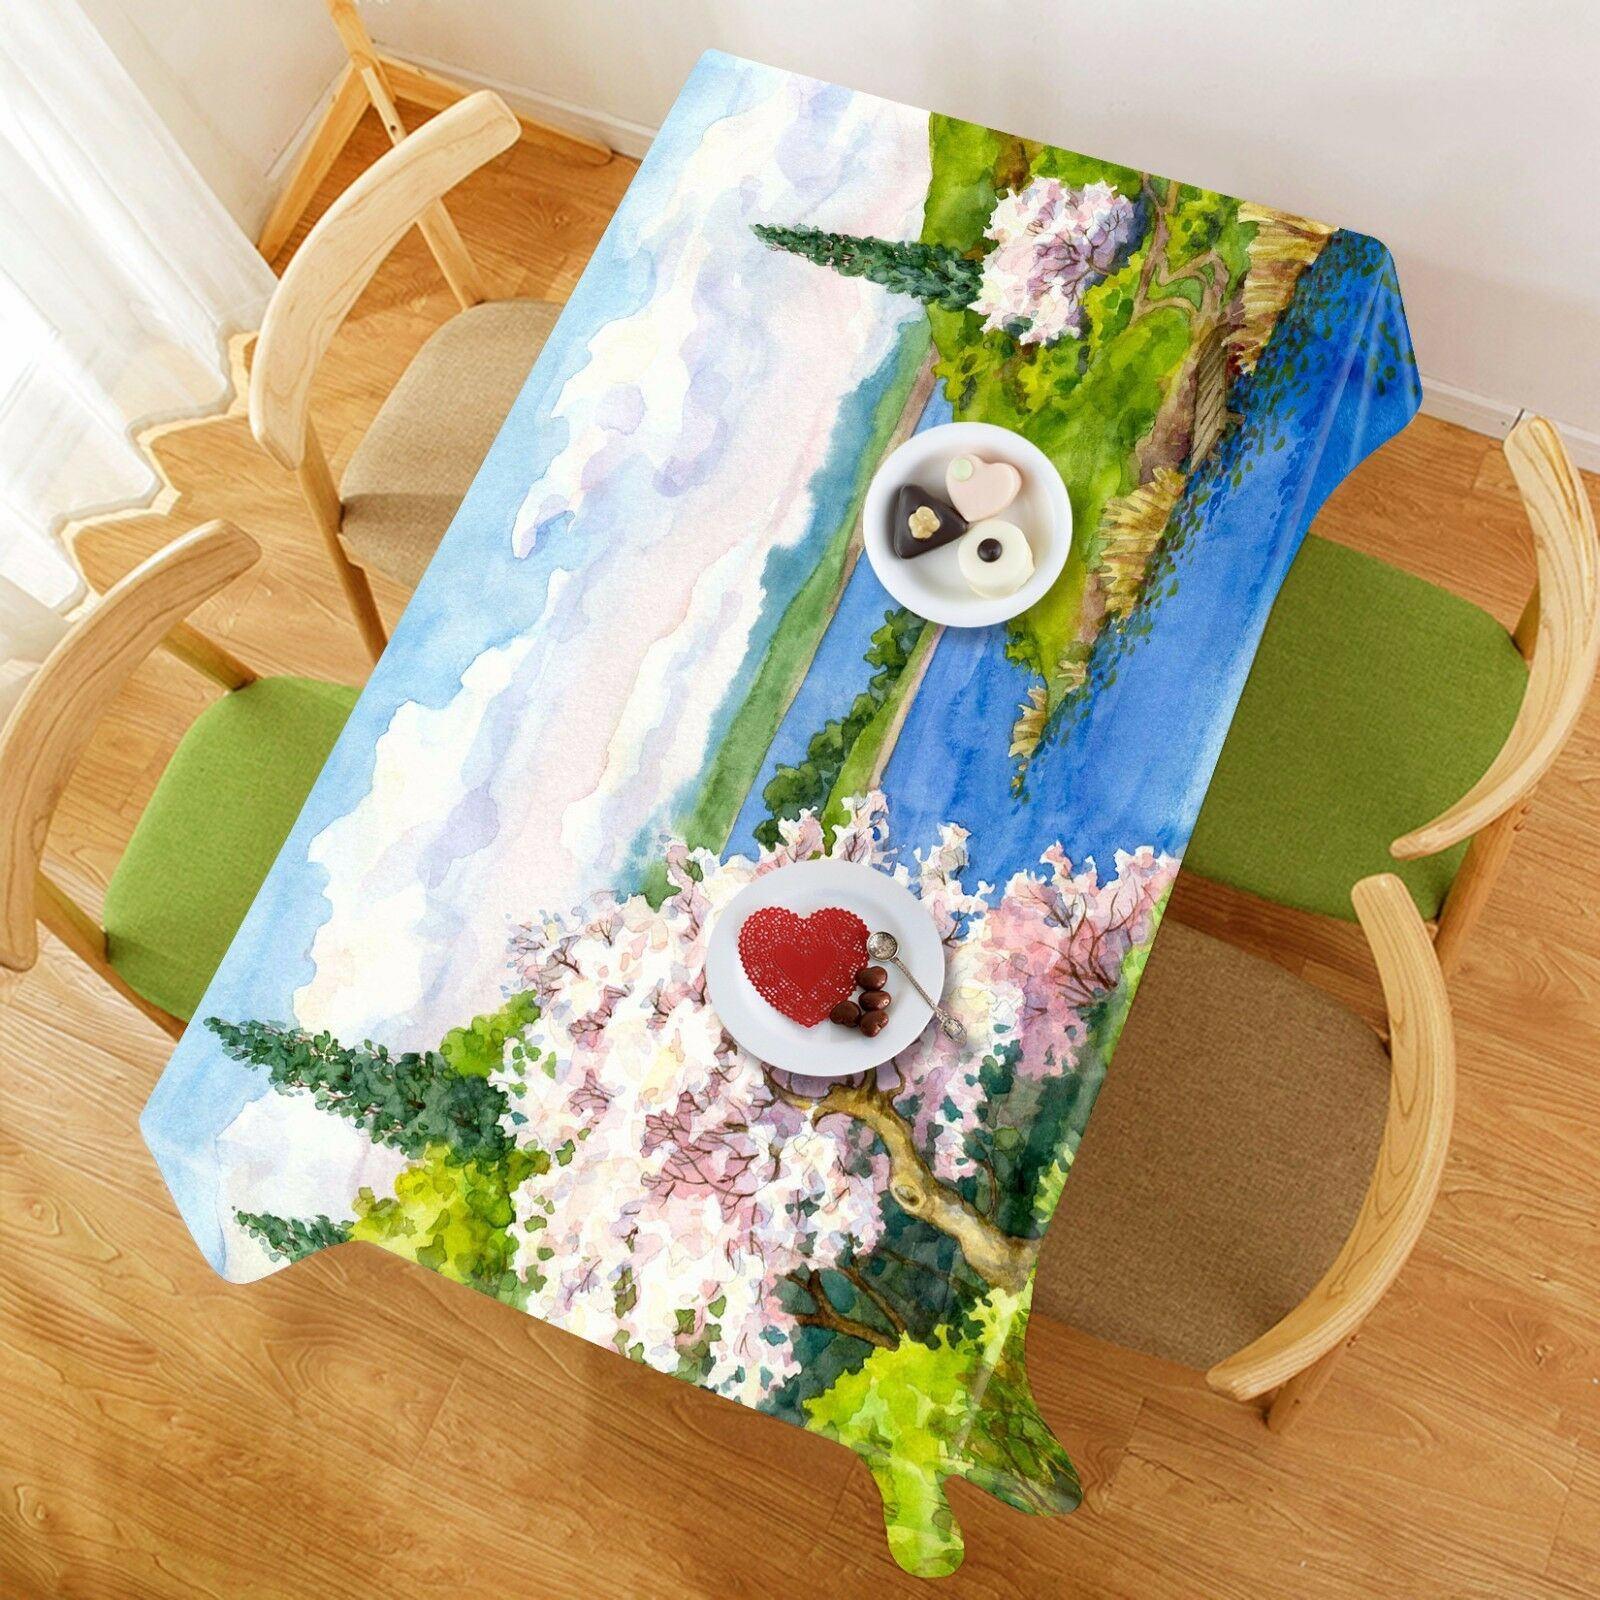 3D River Painting Tablecloth Table Cover Cloth Birthday Party Event AJ WALLPAPER